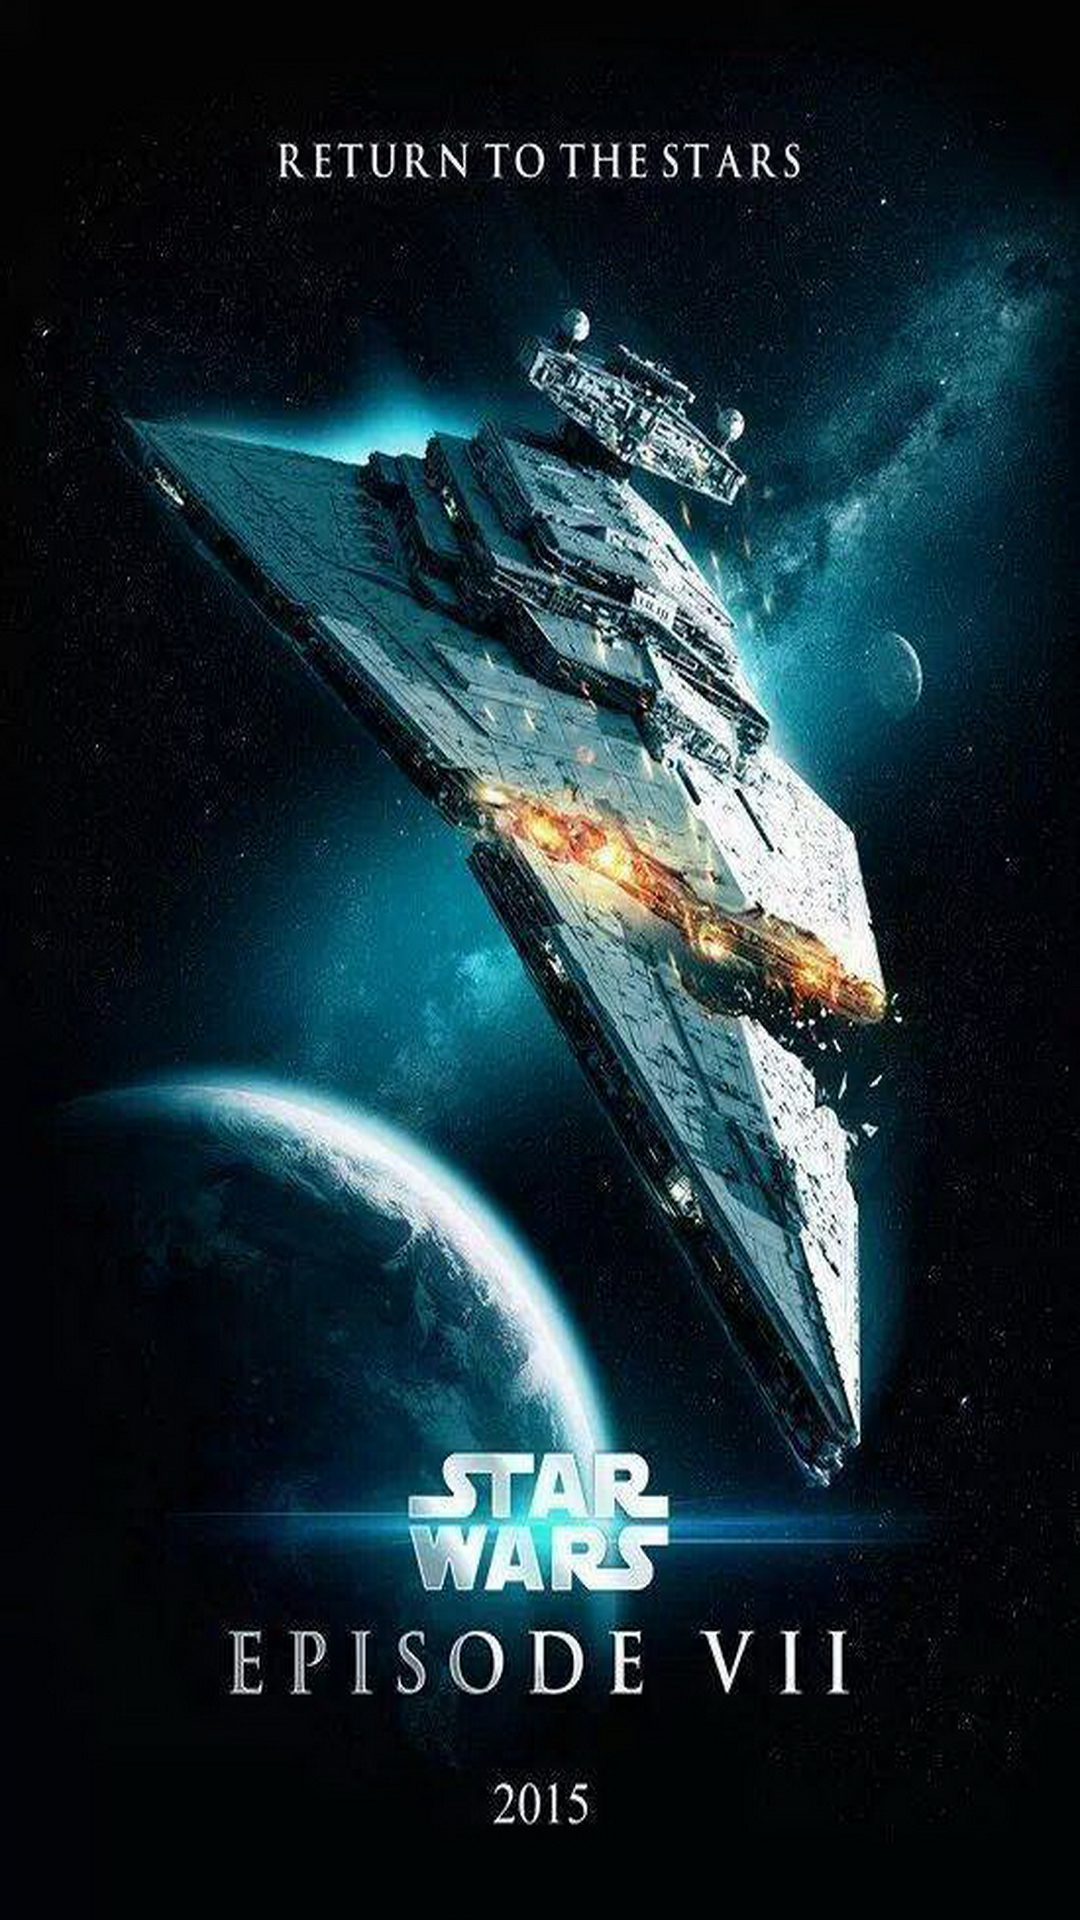 of Epic Star Wars Iphone Wallpaper by HD Wallpapers   SWCROWN 1080x1920